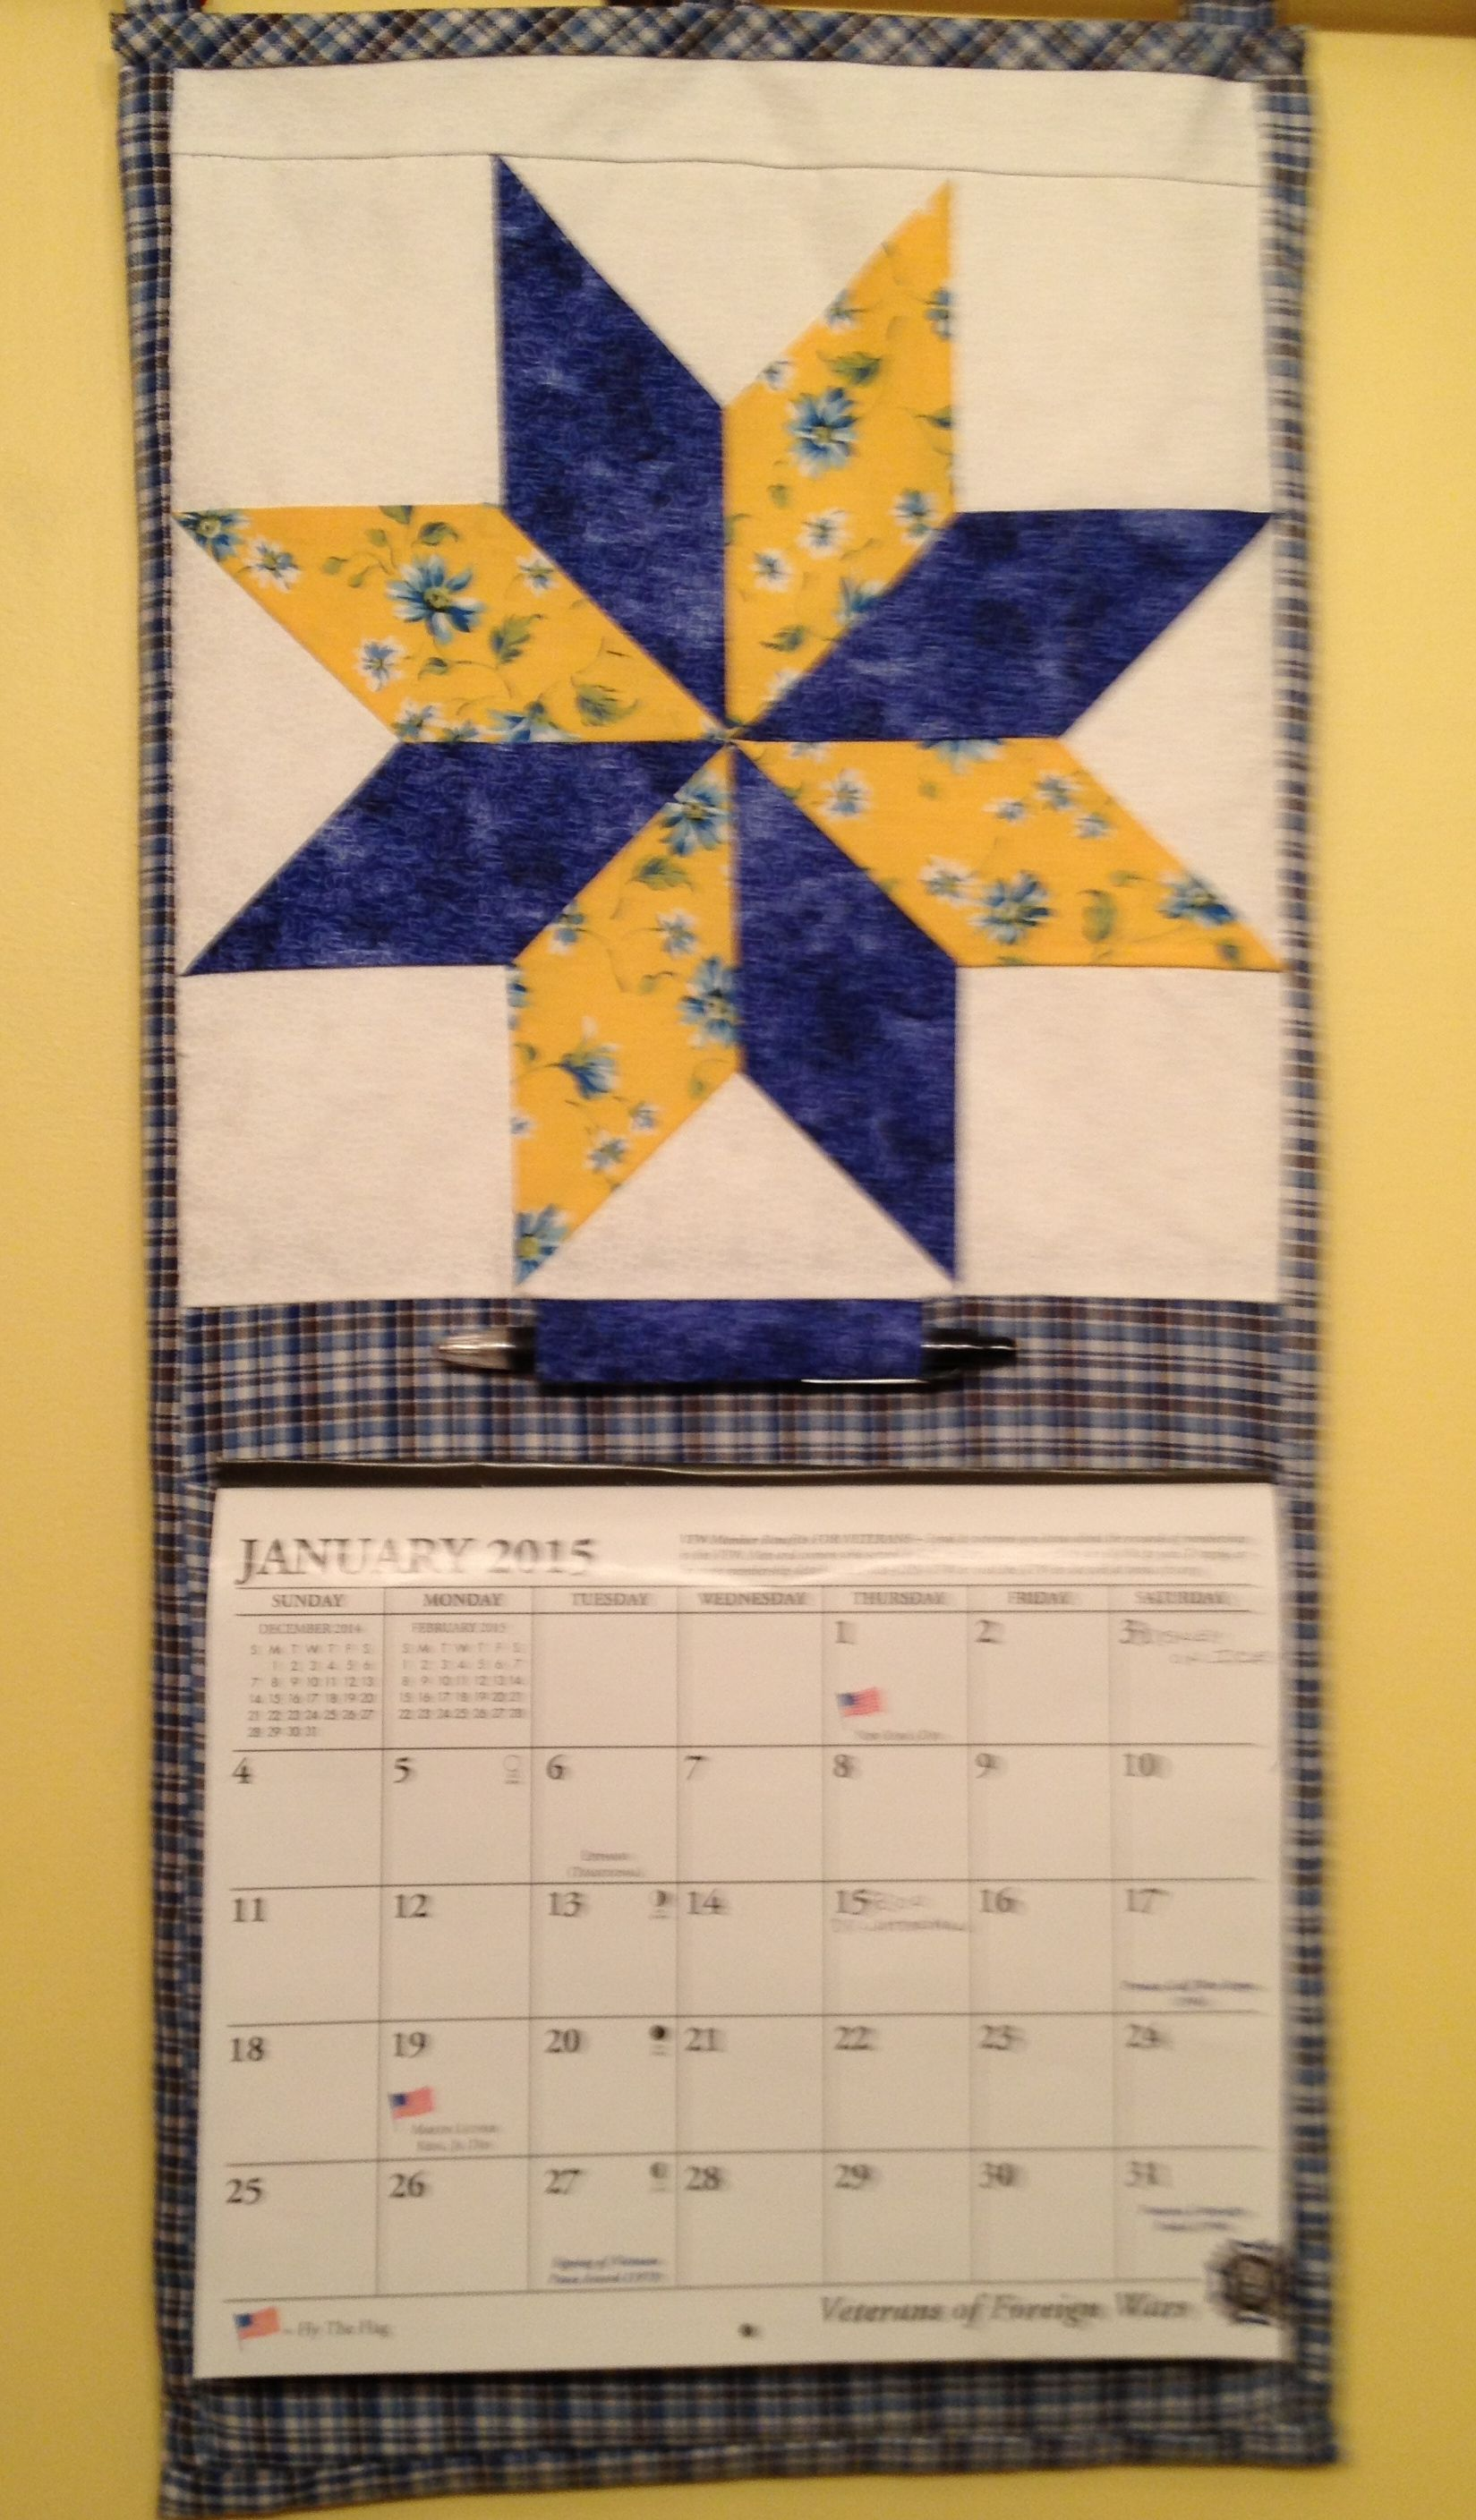 Handy wall hanging for my month by month calendar using the Eight-Point Star Quilt Block by Edyta Sitar.  Check the block out on YouTube